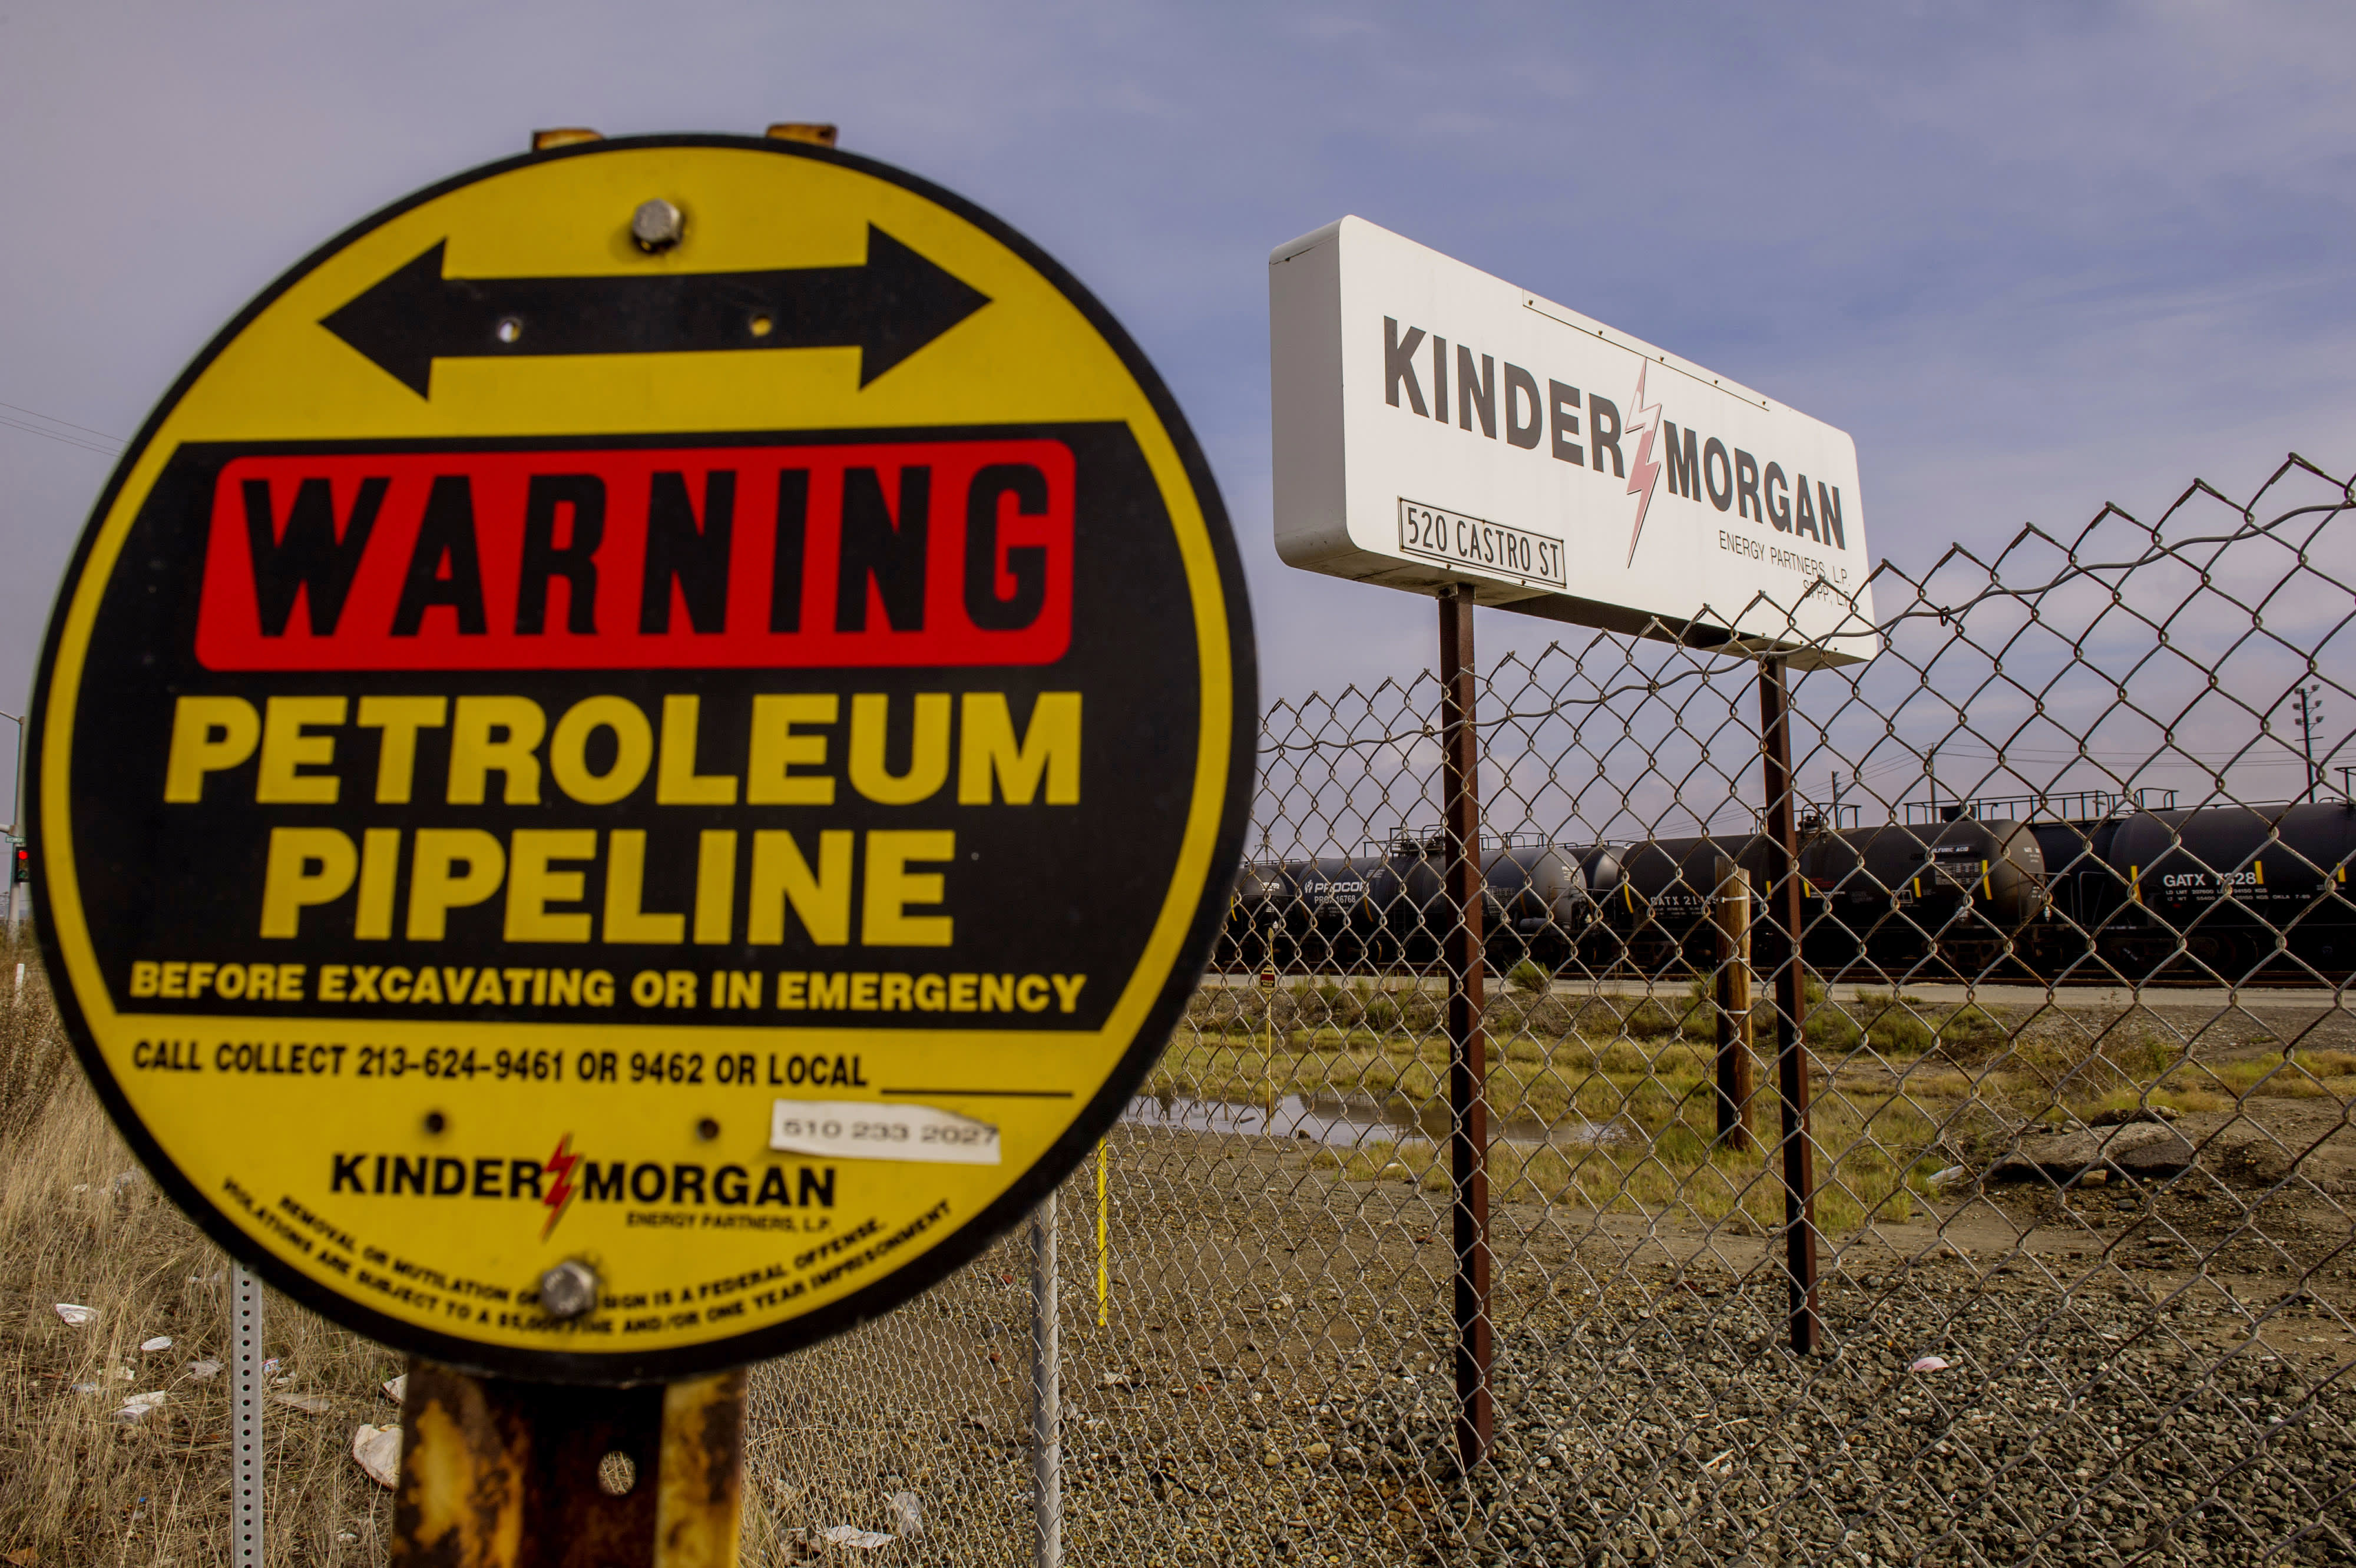 Kinder Morgan, Chipotle, Whirlpool and more